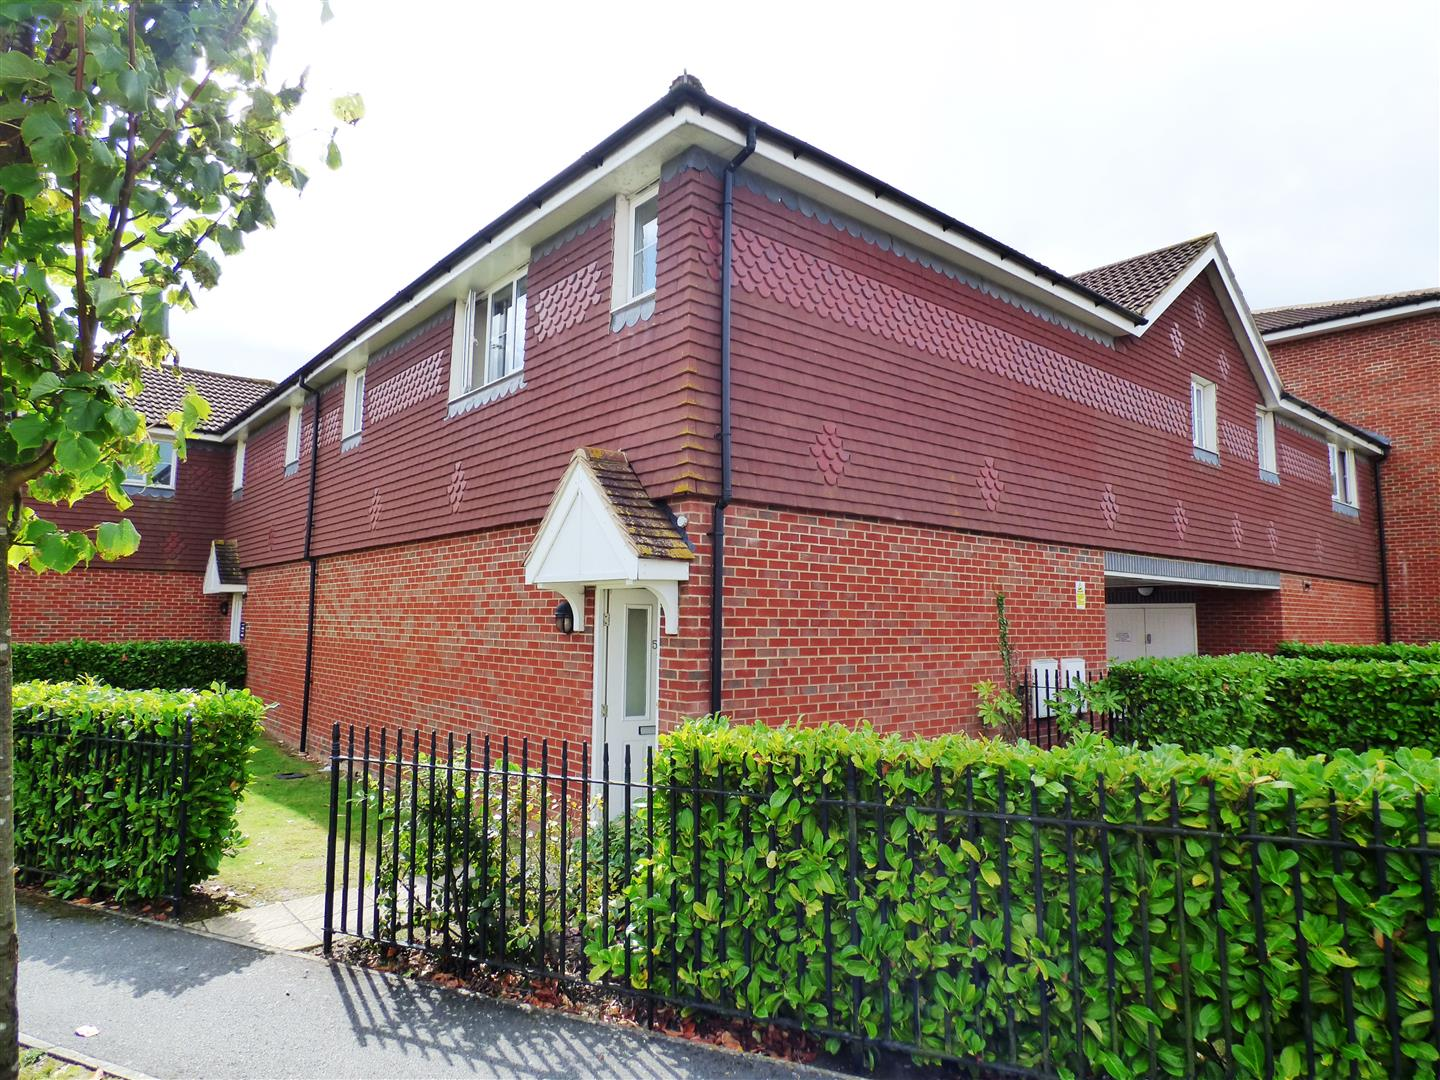 2 Bedrooms Maisonette Flat for sale in Kiln Way, Dunstable